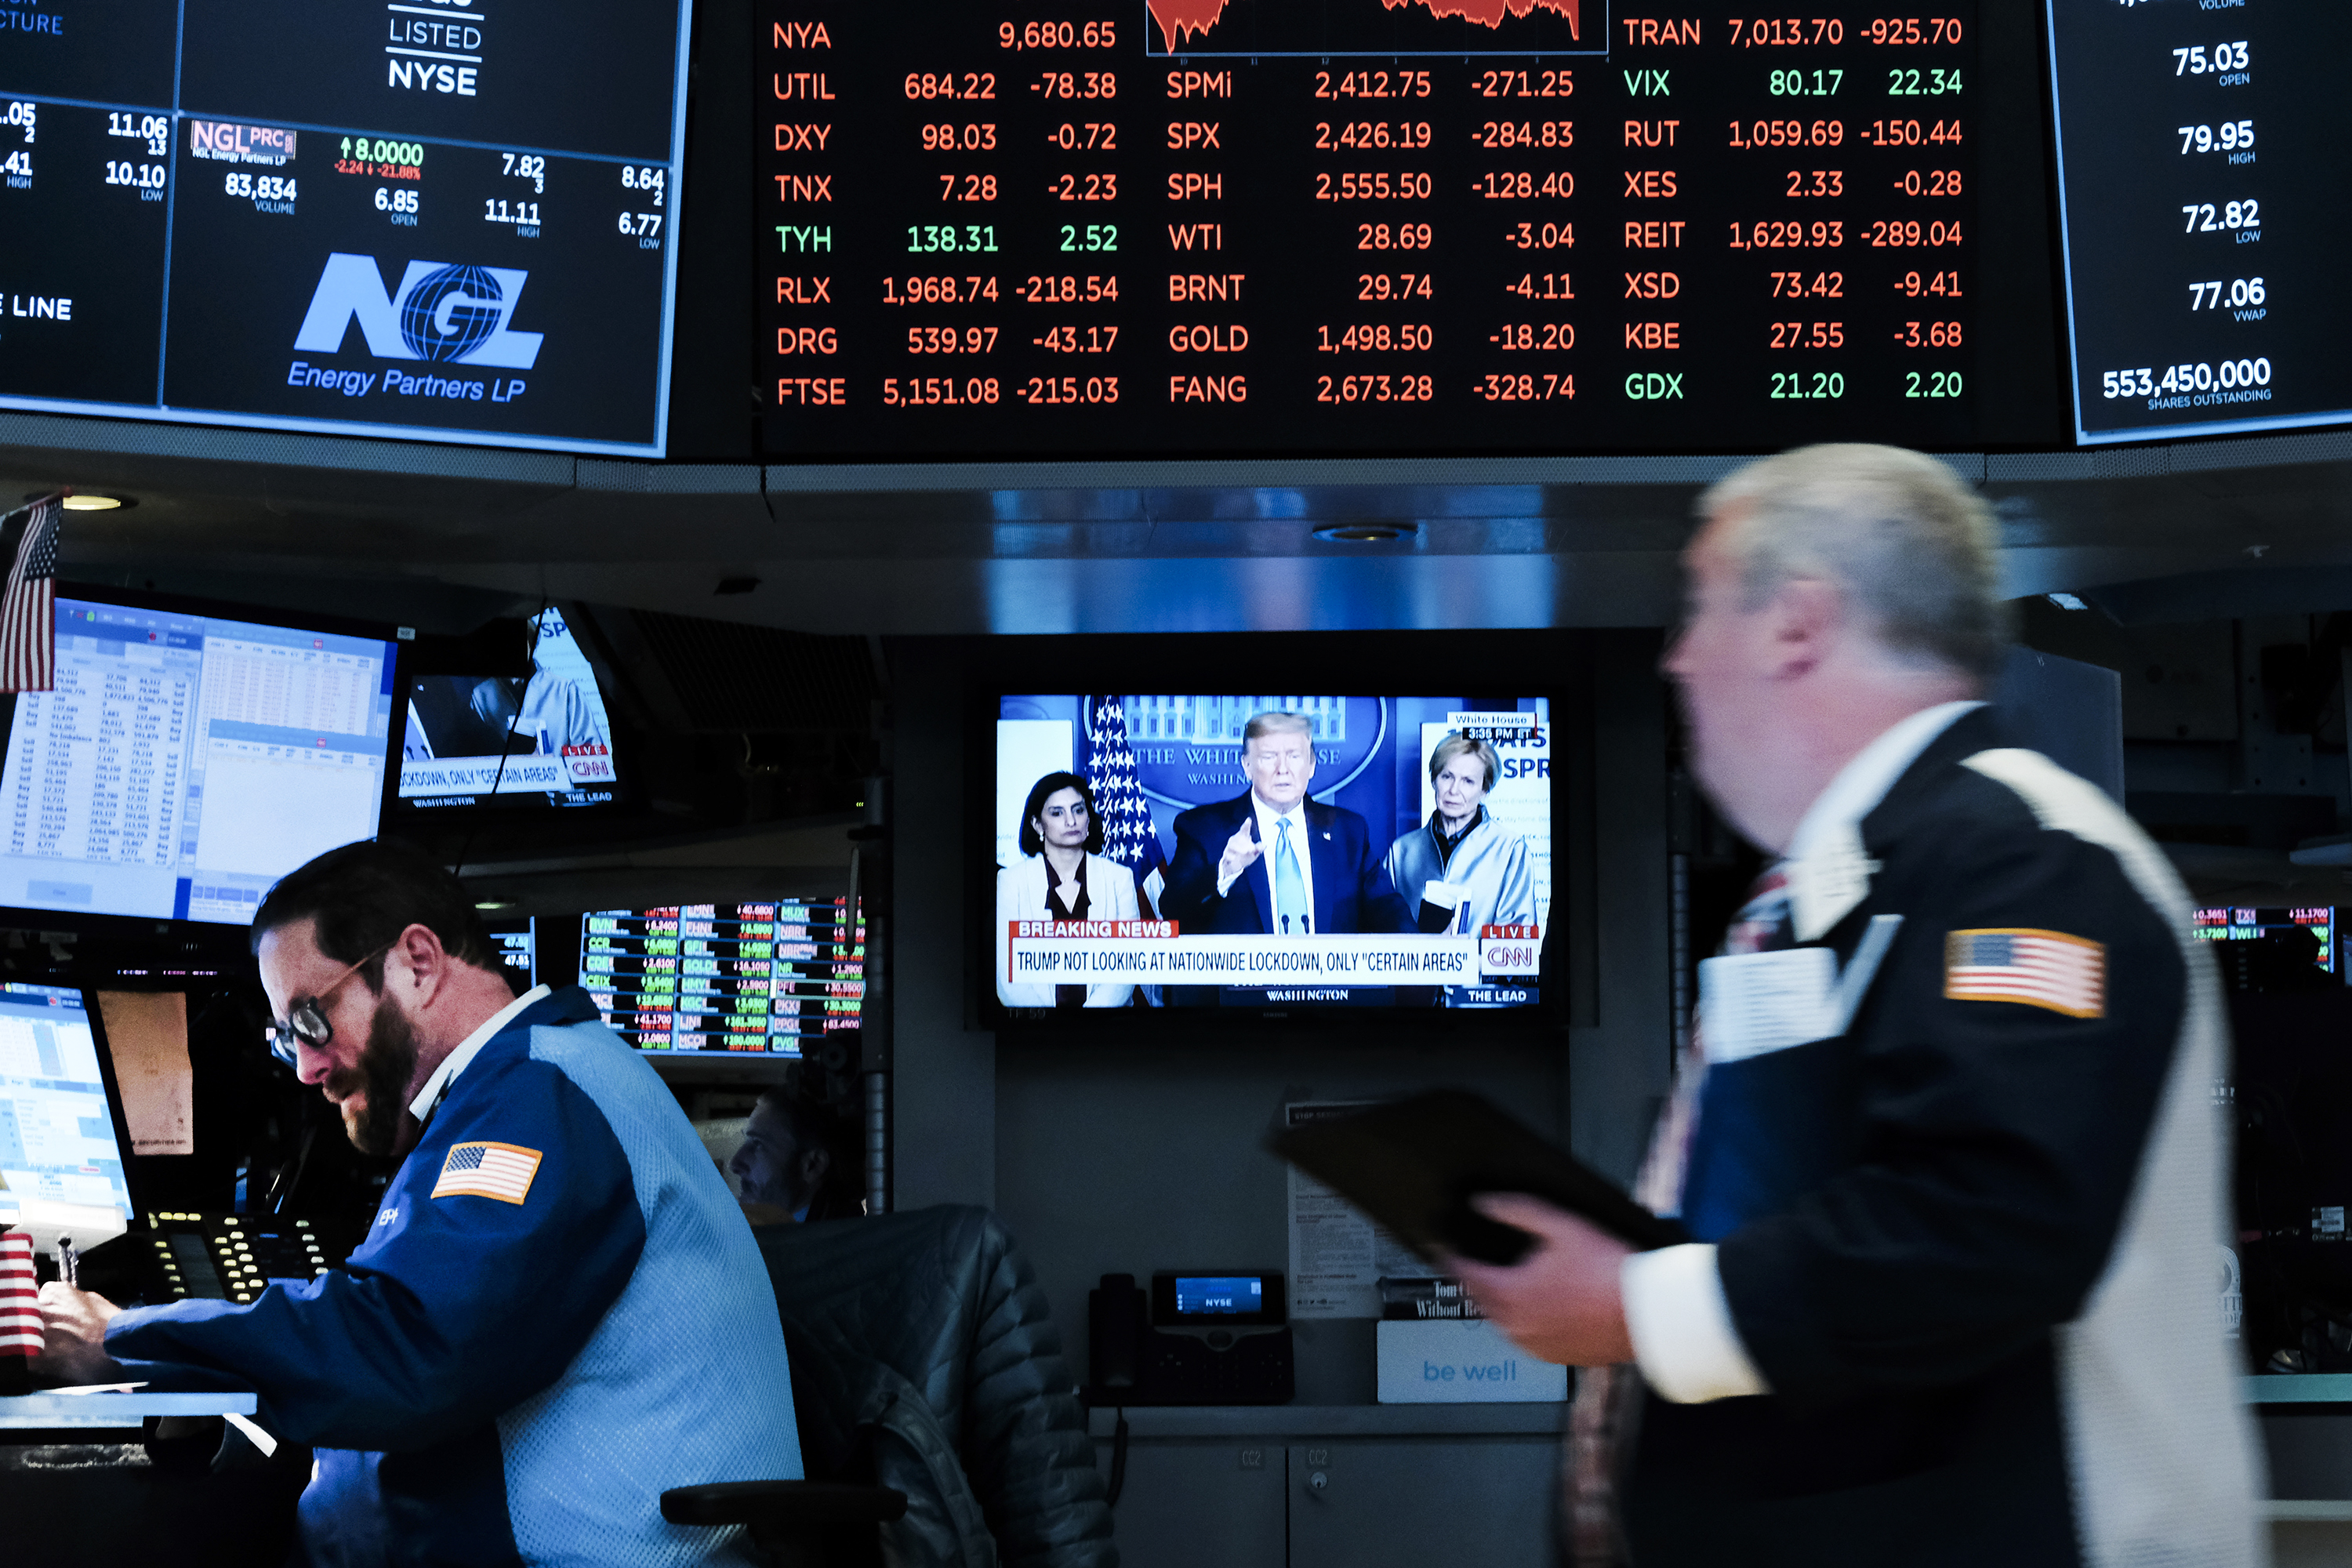 Two people on the floor of the New York Stock Exchange with a television screen showing a Trump news conference in the background.